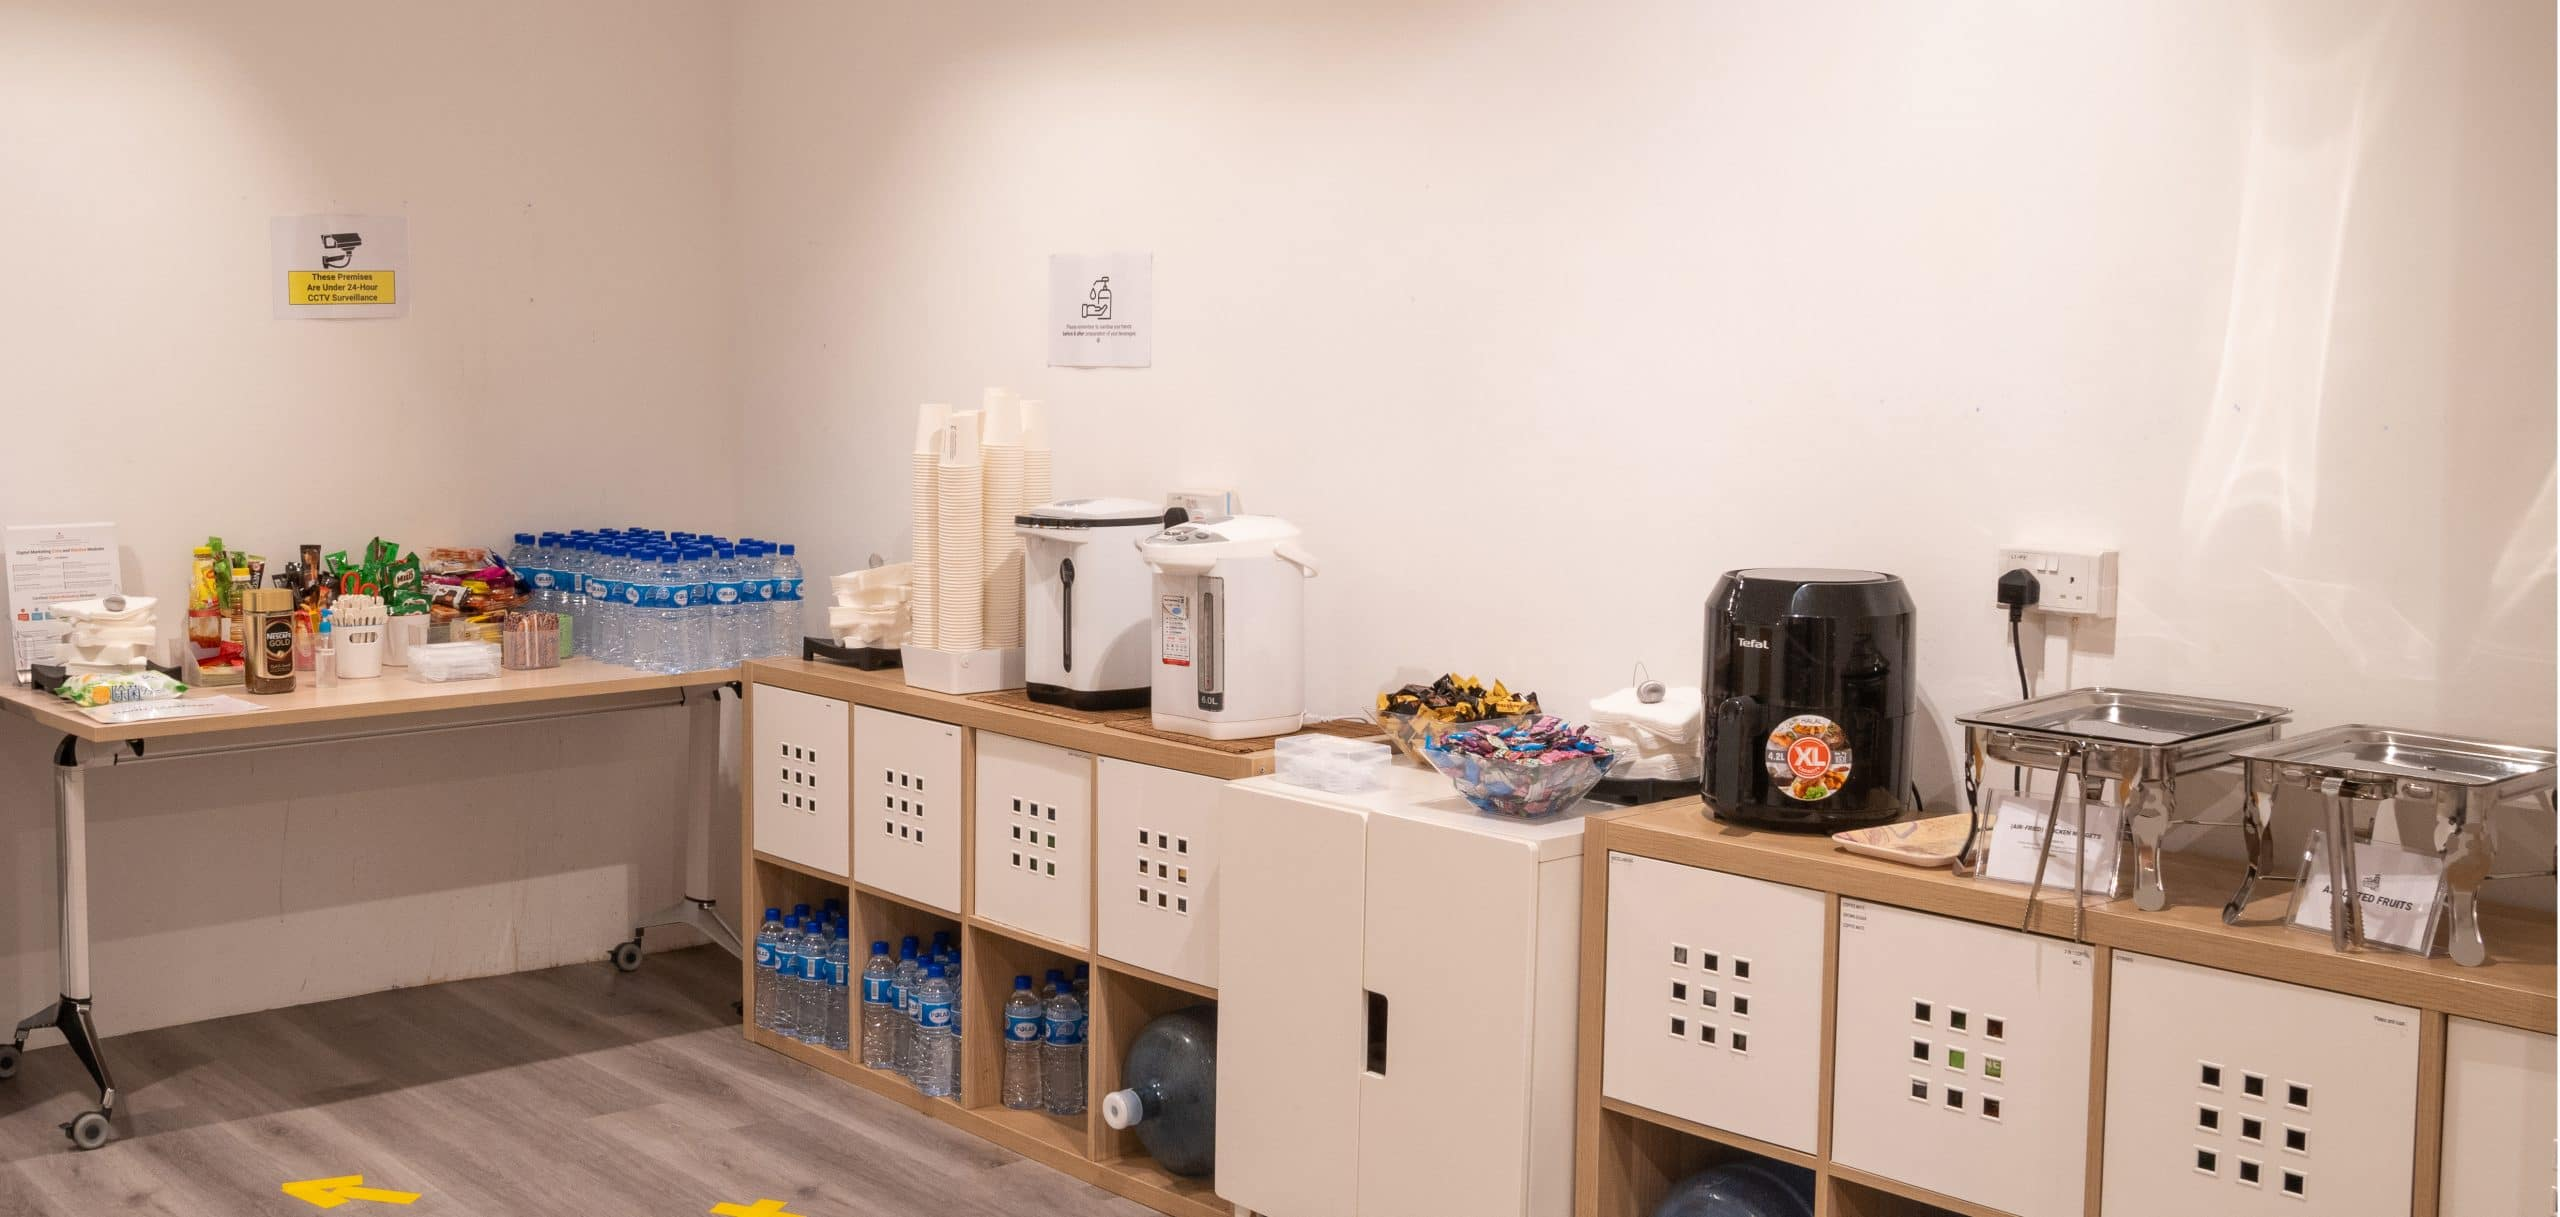 Pantry Equinet Academy Training Facilities